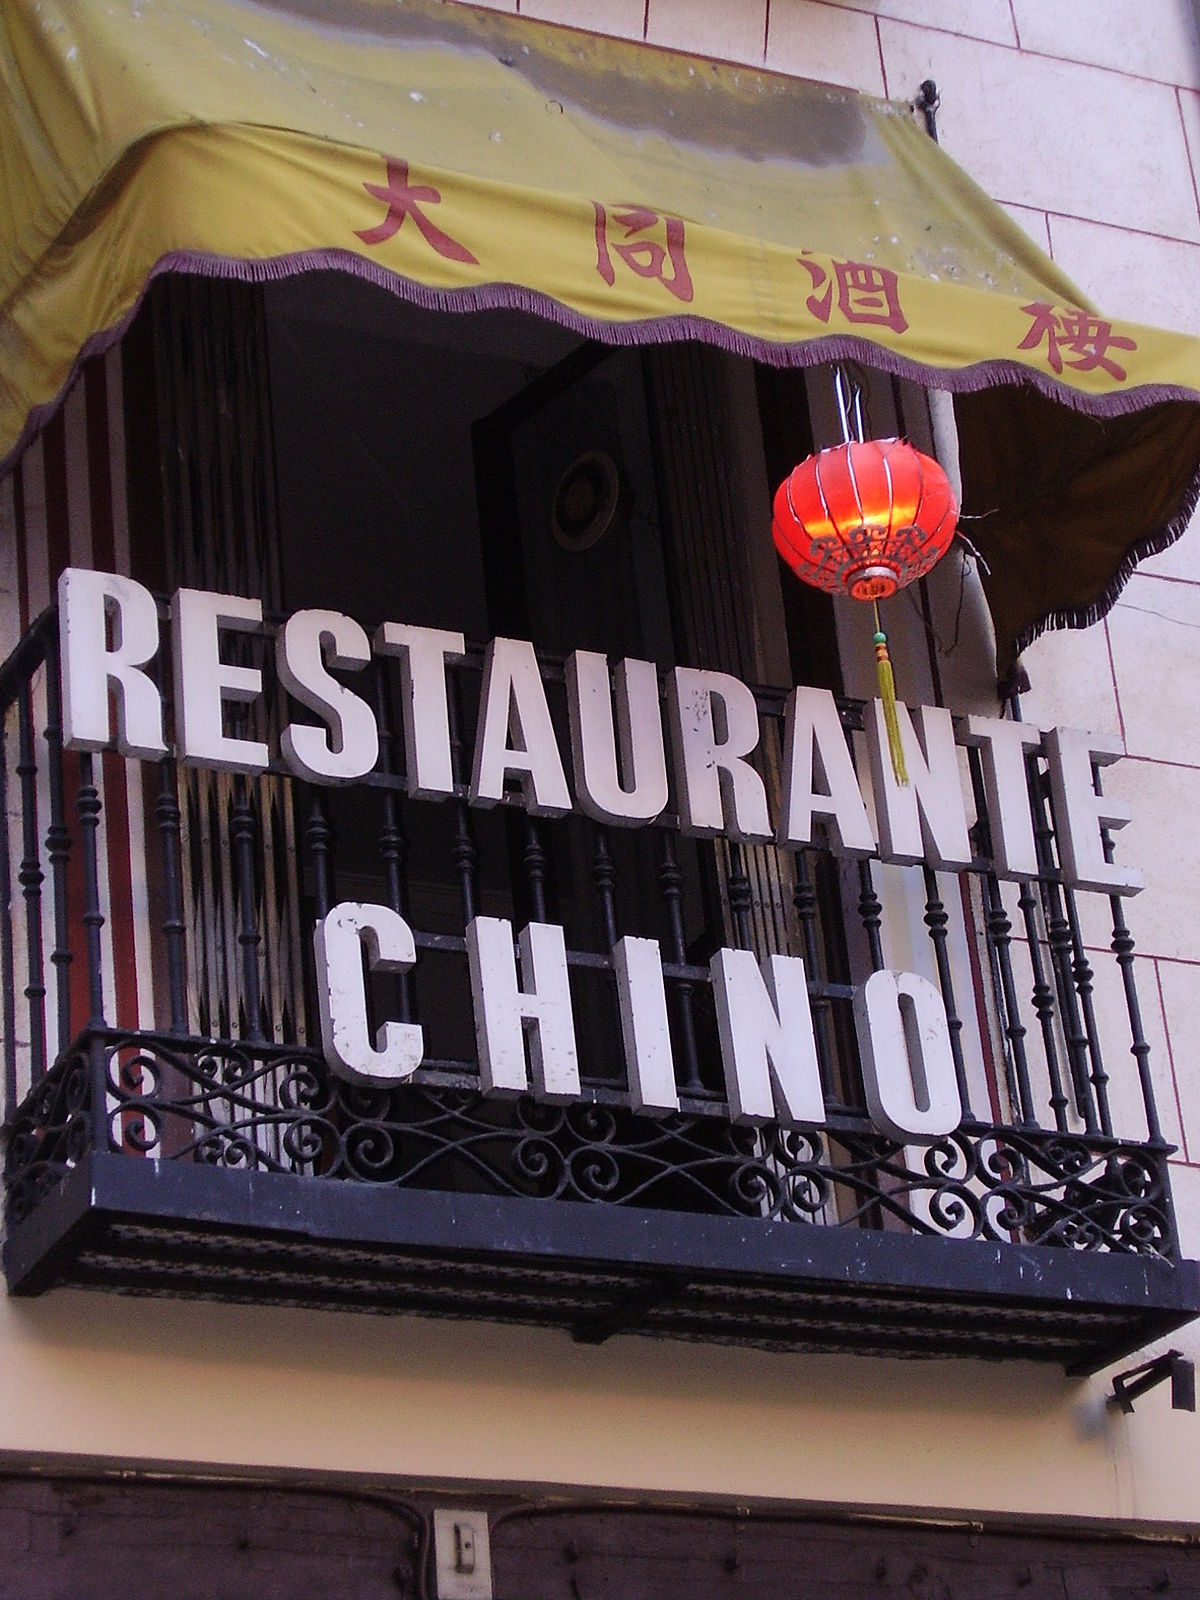 Buffet Libre Chino Madrid Inmigración China En España Wikipedia La Enciclopedia Libre